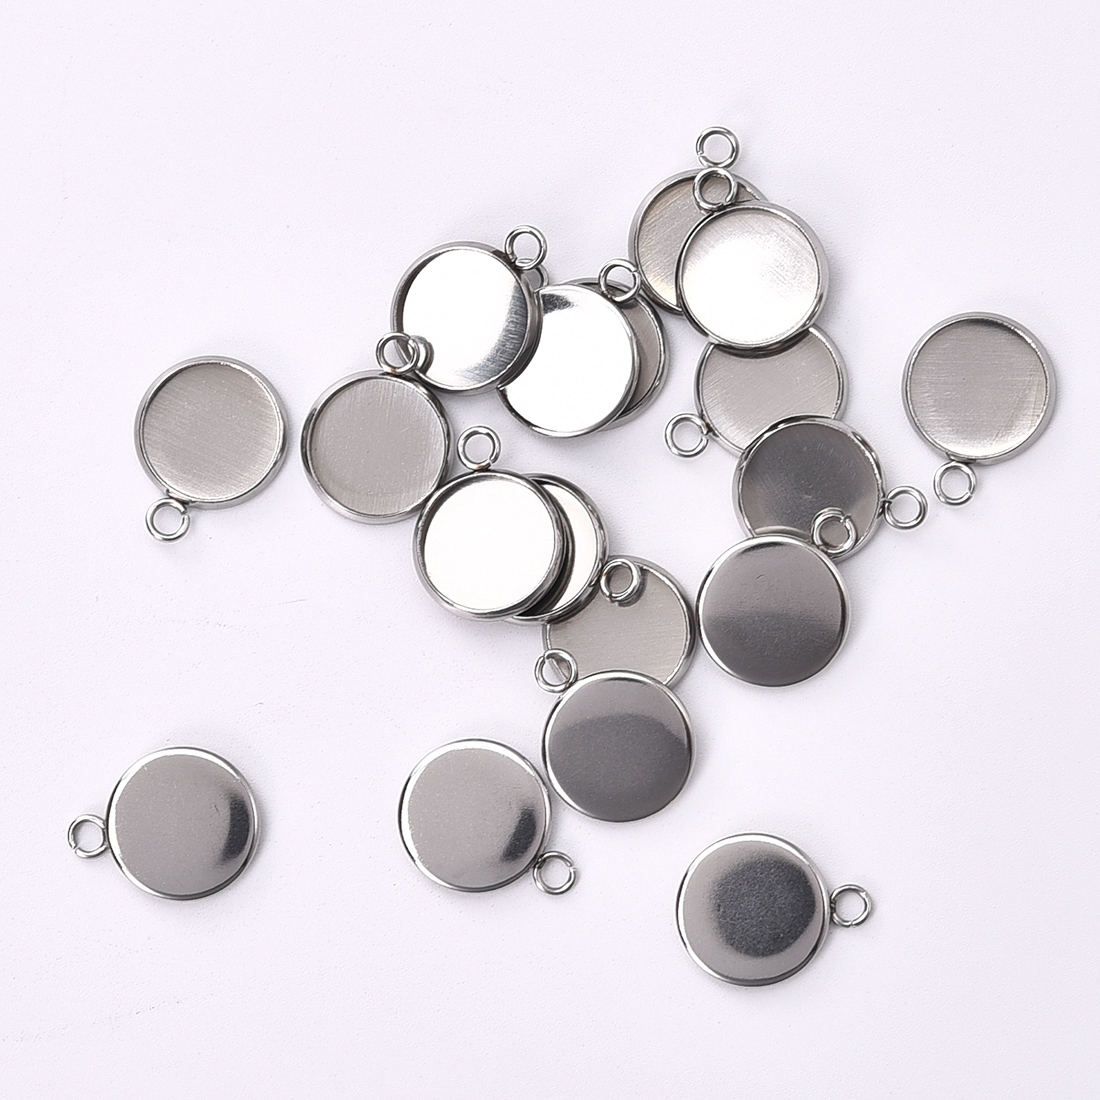 Stainless-Steel Base Pendant Bezel Jewelry Making-Component Cabochon-Setting Round 8mm title=